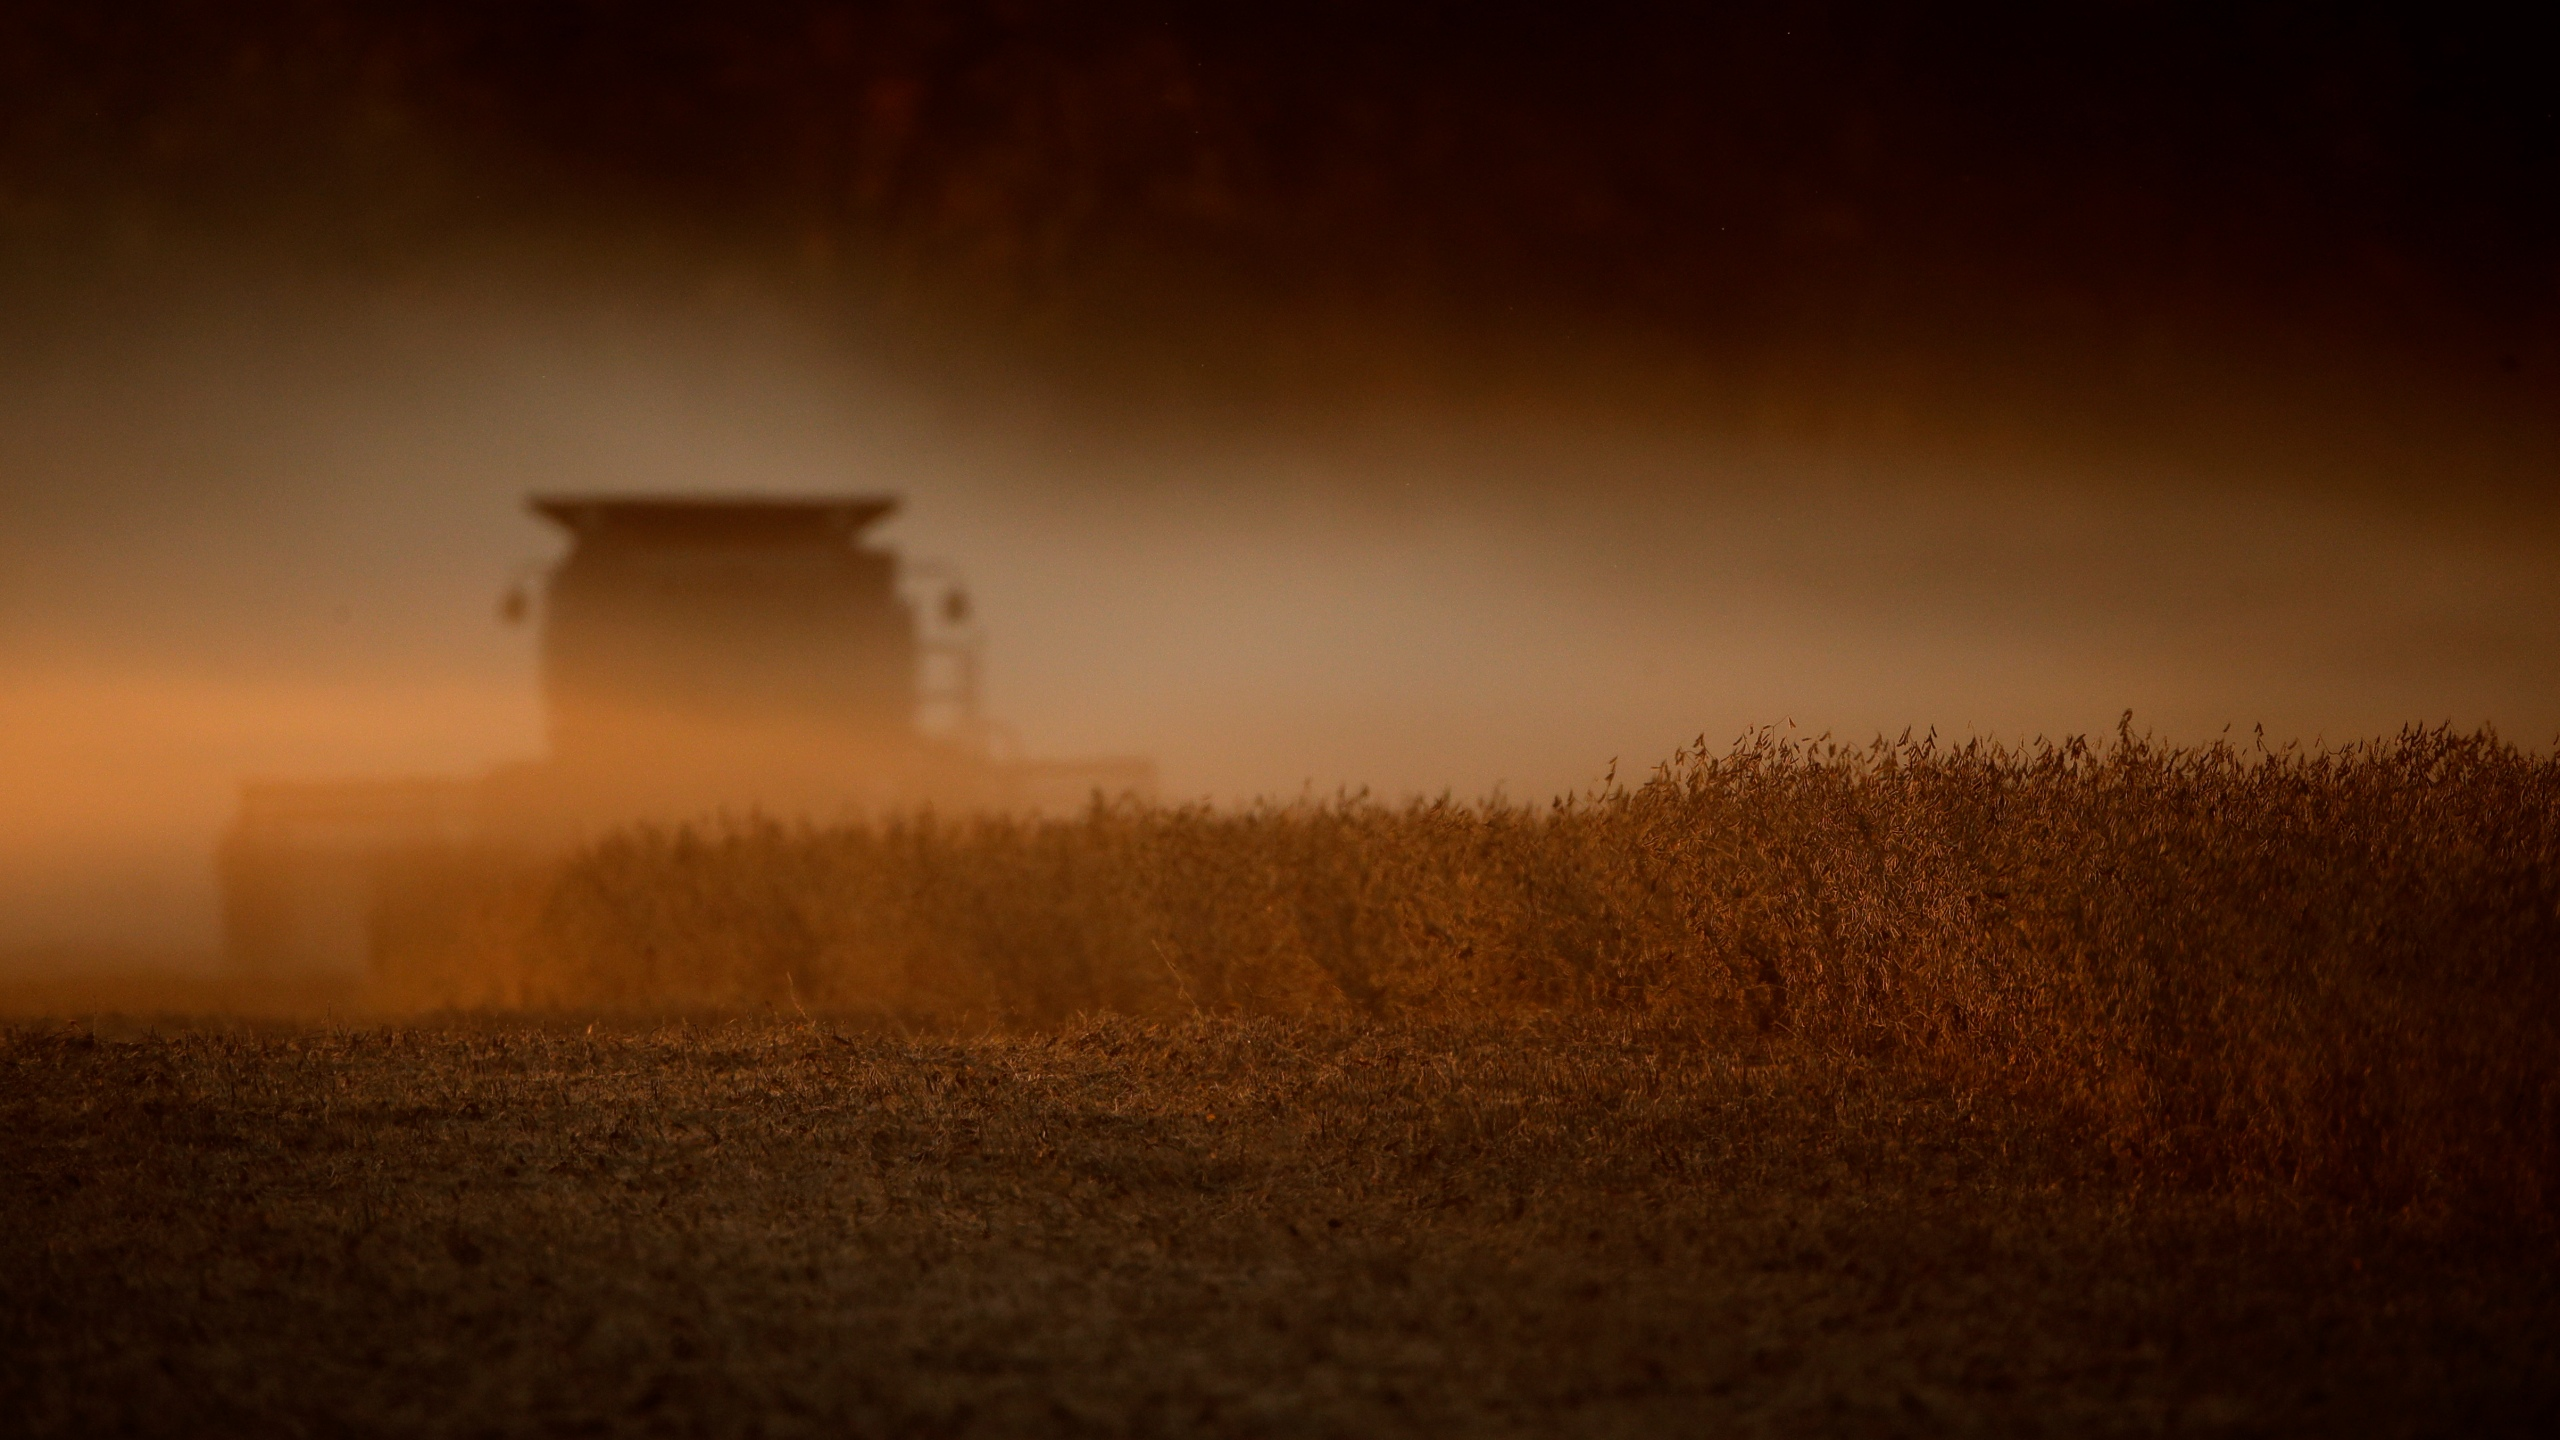 In this Oct. 19, 2019, file photo soybeans are harvested near Wamego, Kan. The Biden administration said on Aug. 18, 2021, that it was banning use of chlorpyrifos, a widely used pesticide long targeted by environmentalists because it poses risks to children and farm workers. (AP Photo/Charlie Riedel, File)